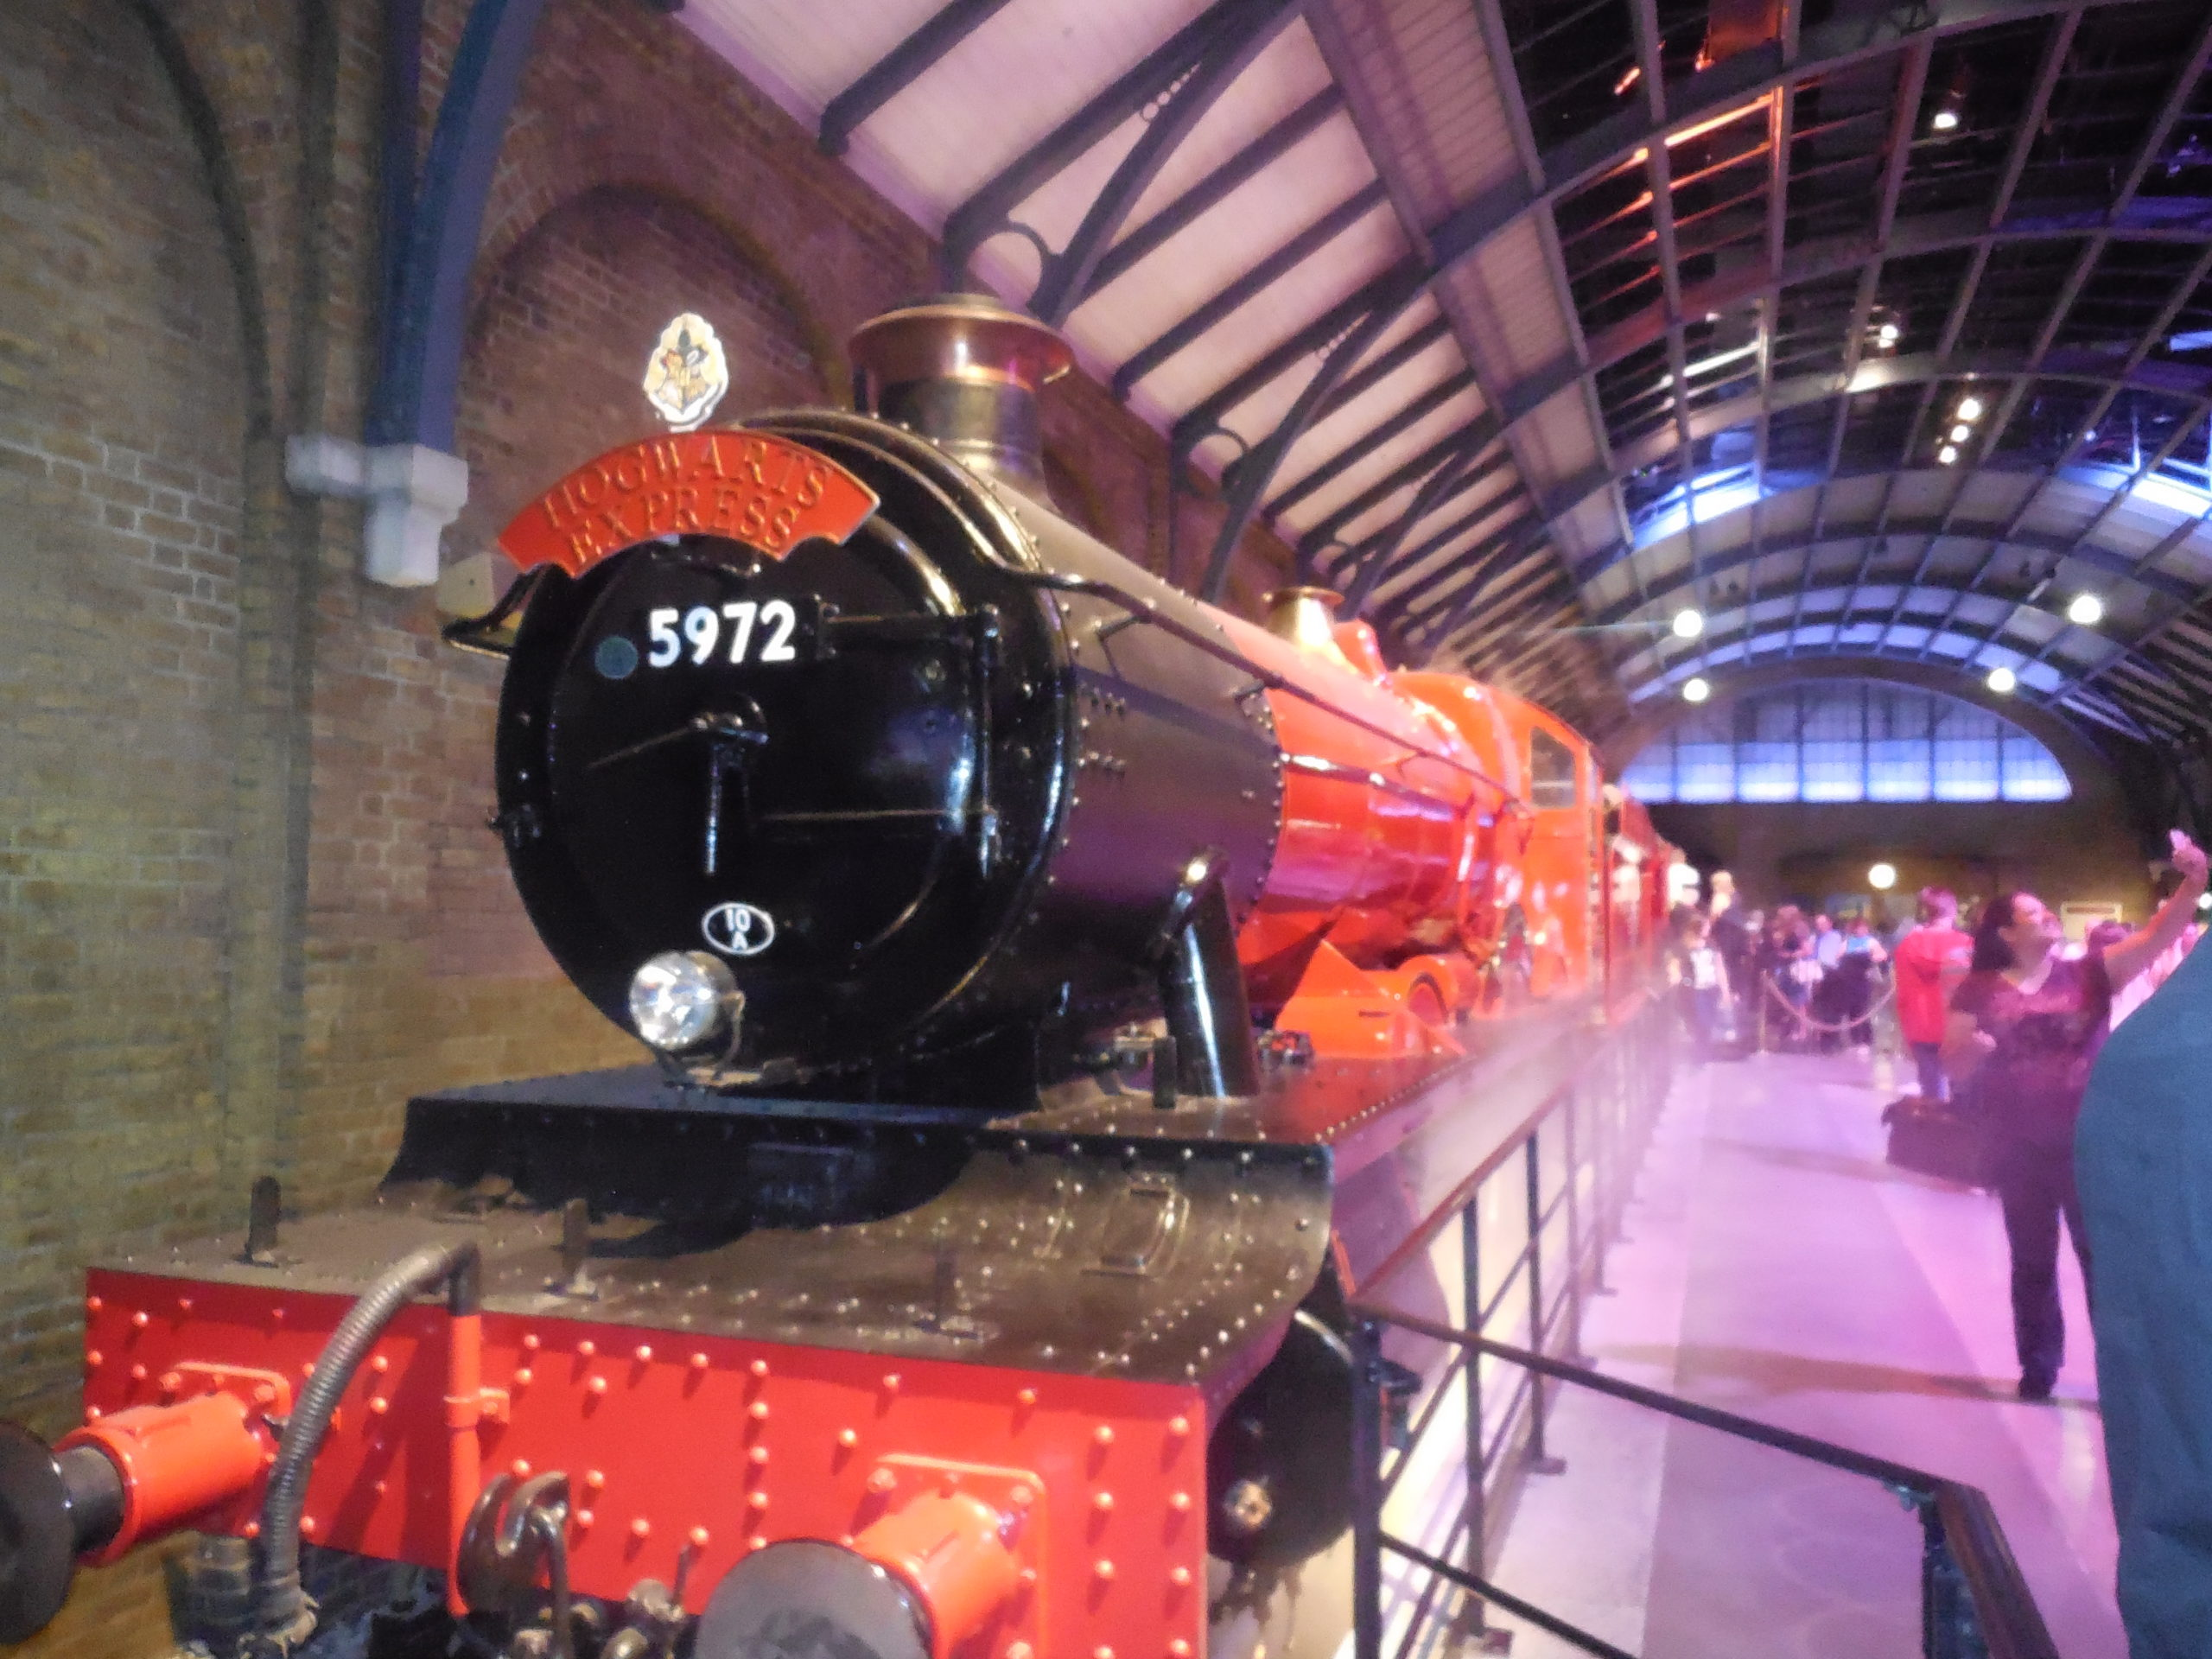 The Hogwarts Express at the Harry Potter Studio Tour